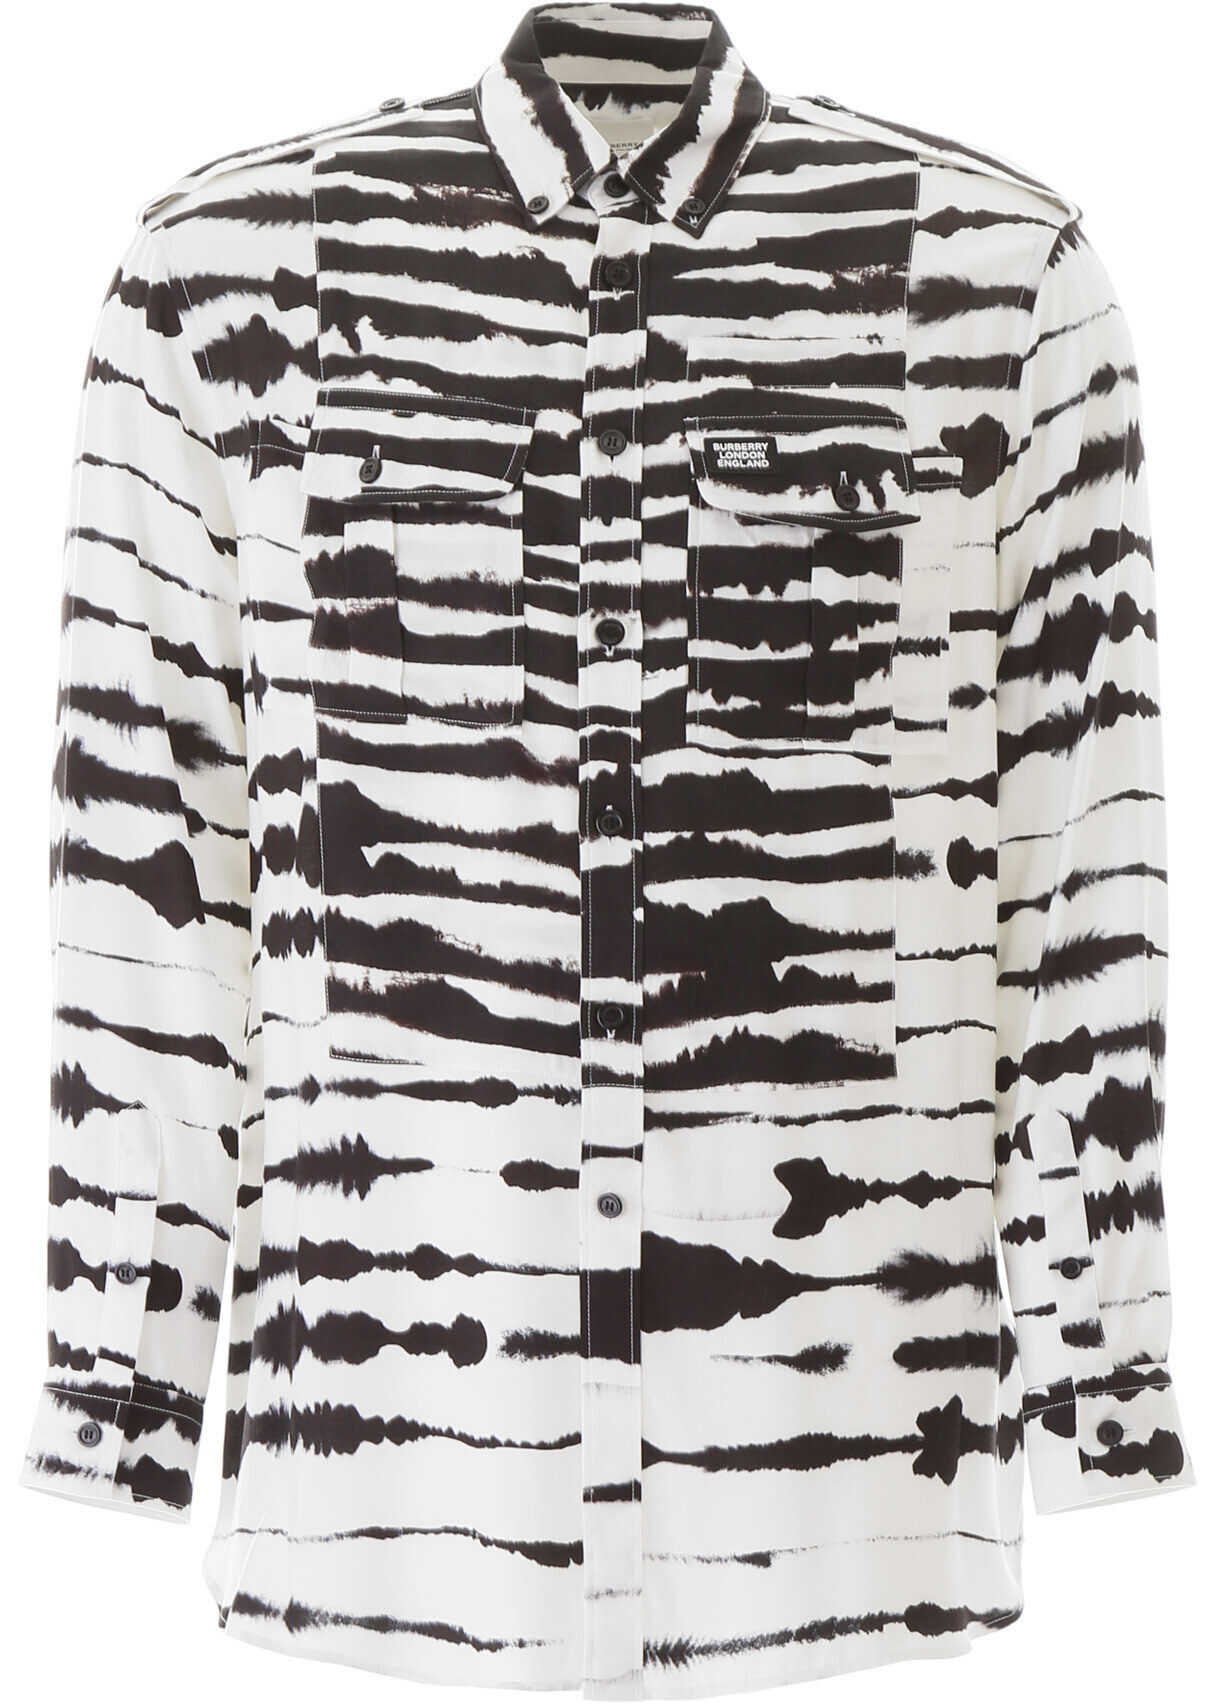 Burberry Watercolour Print Shirt MONOCHROME IP PTTN